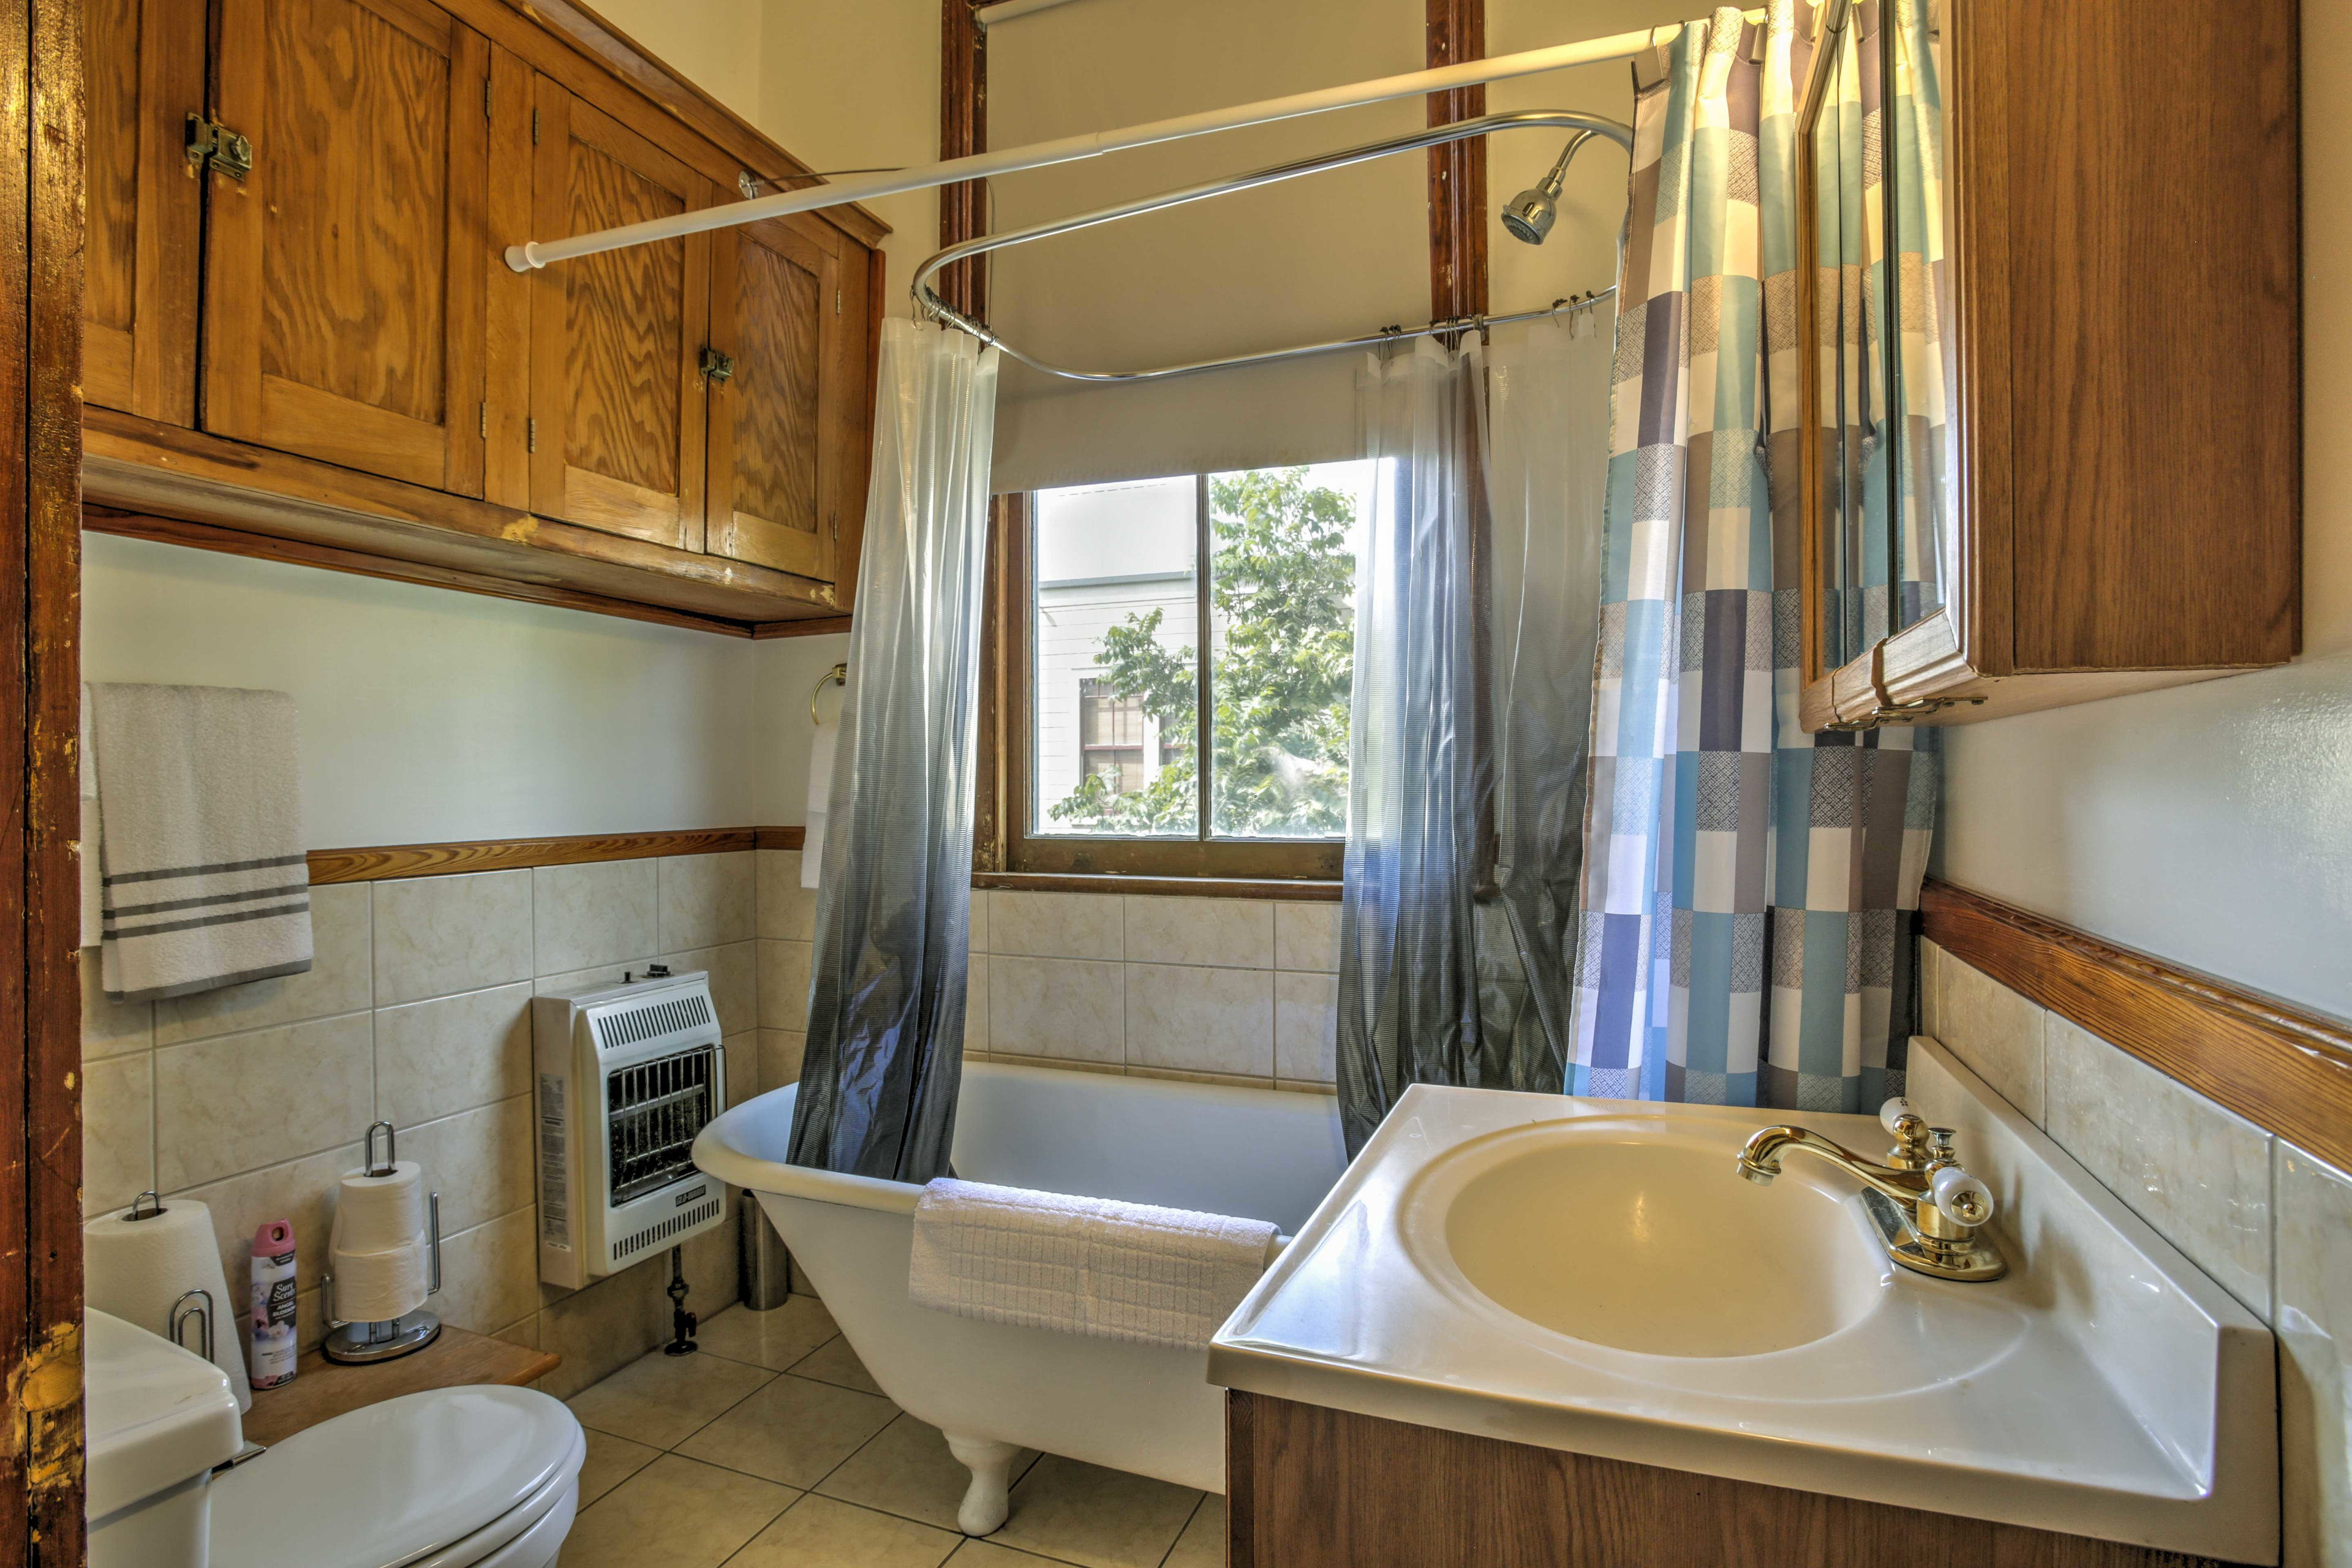 The bathroom features a clawfoot tub that has been modified with a showerhead.